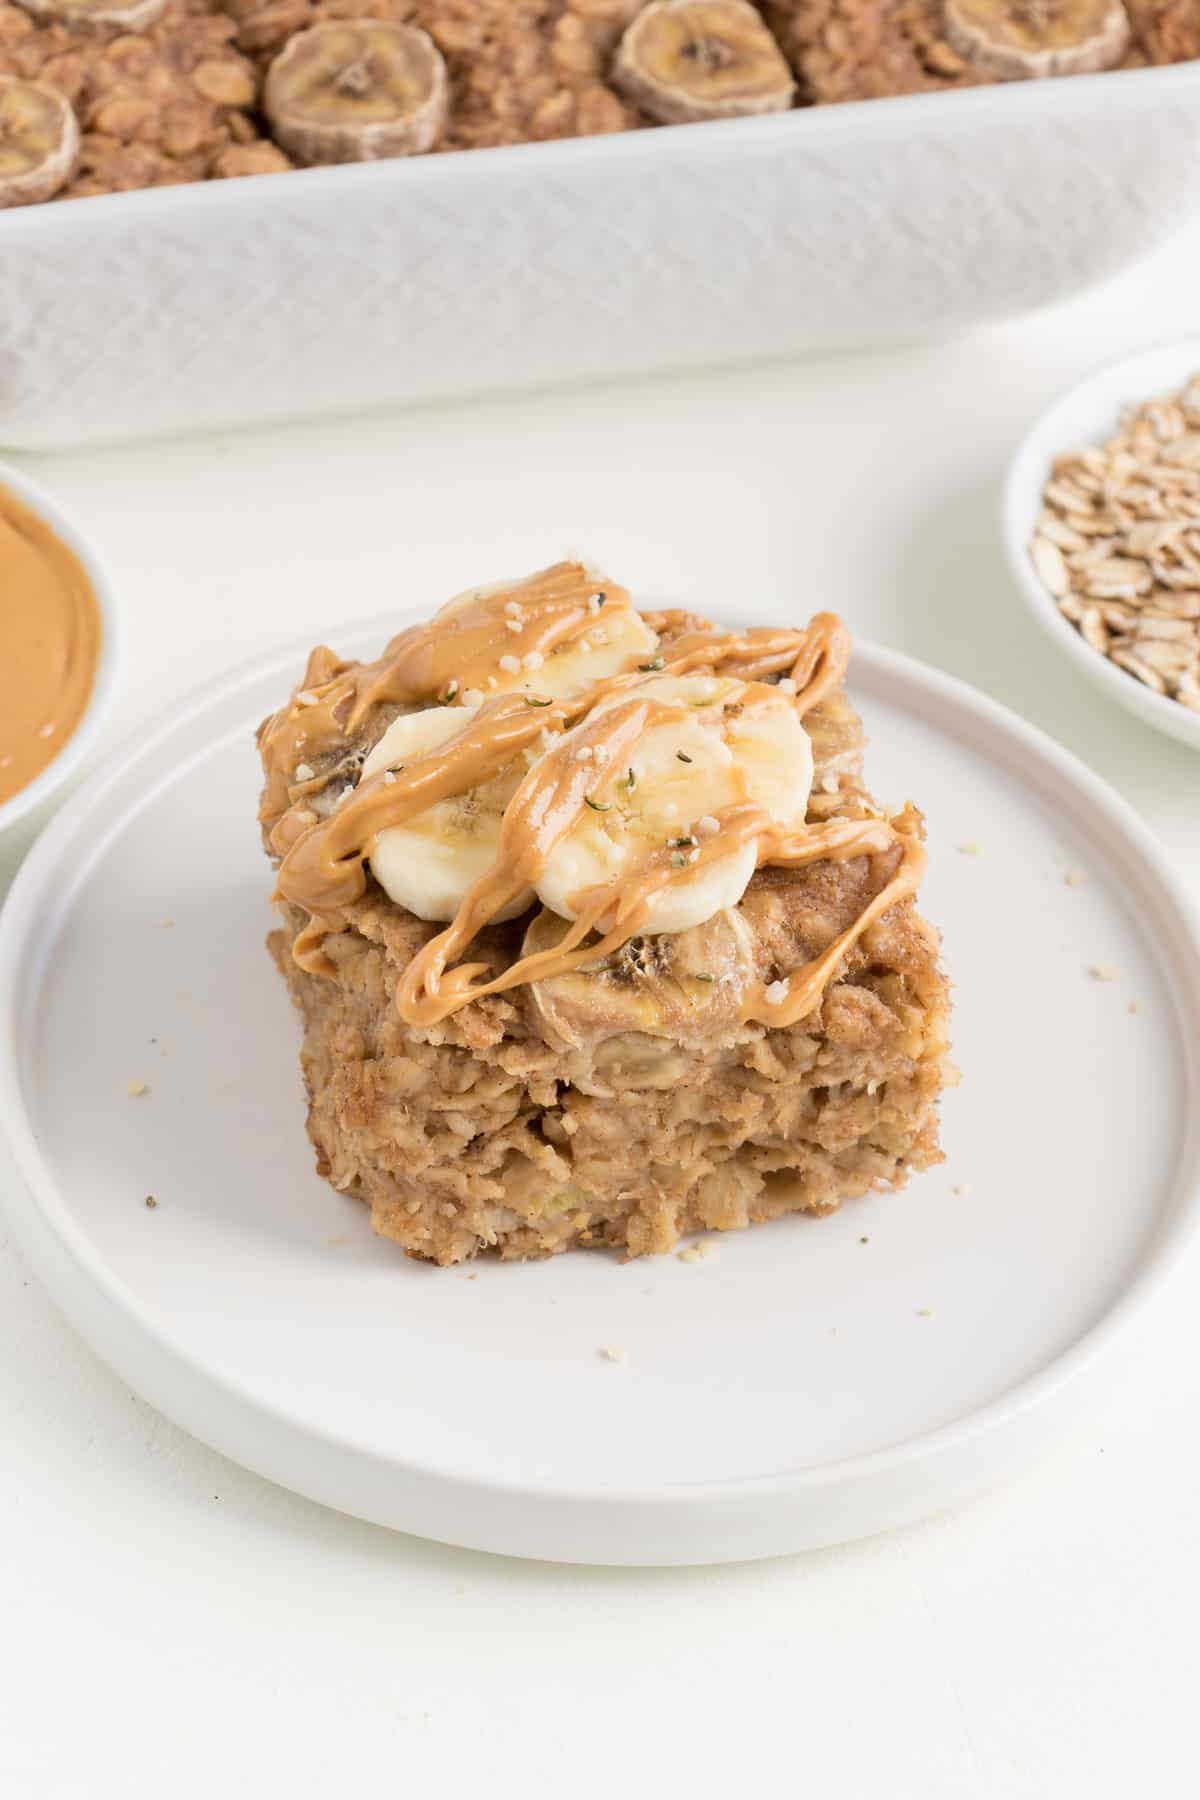 slice of peanut butter banana baked oatmeal topped with sliced bananas and peanut butter on a white plate